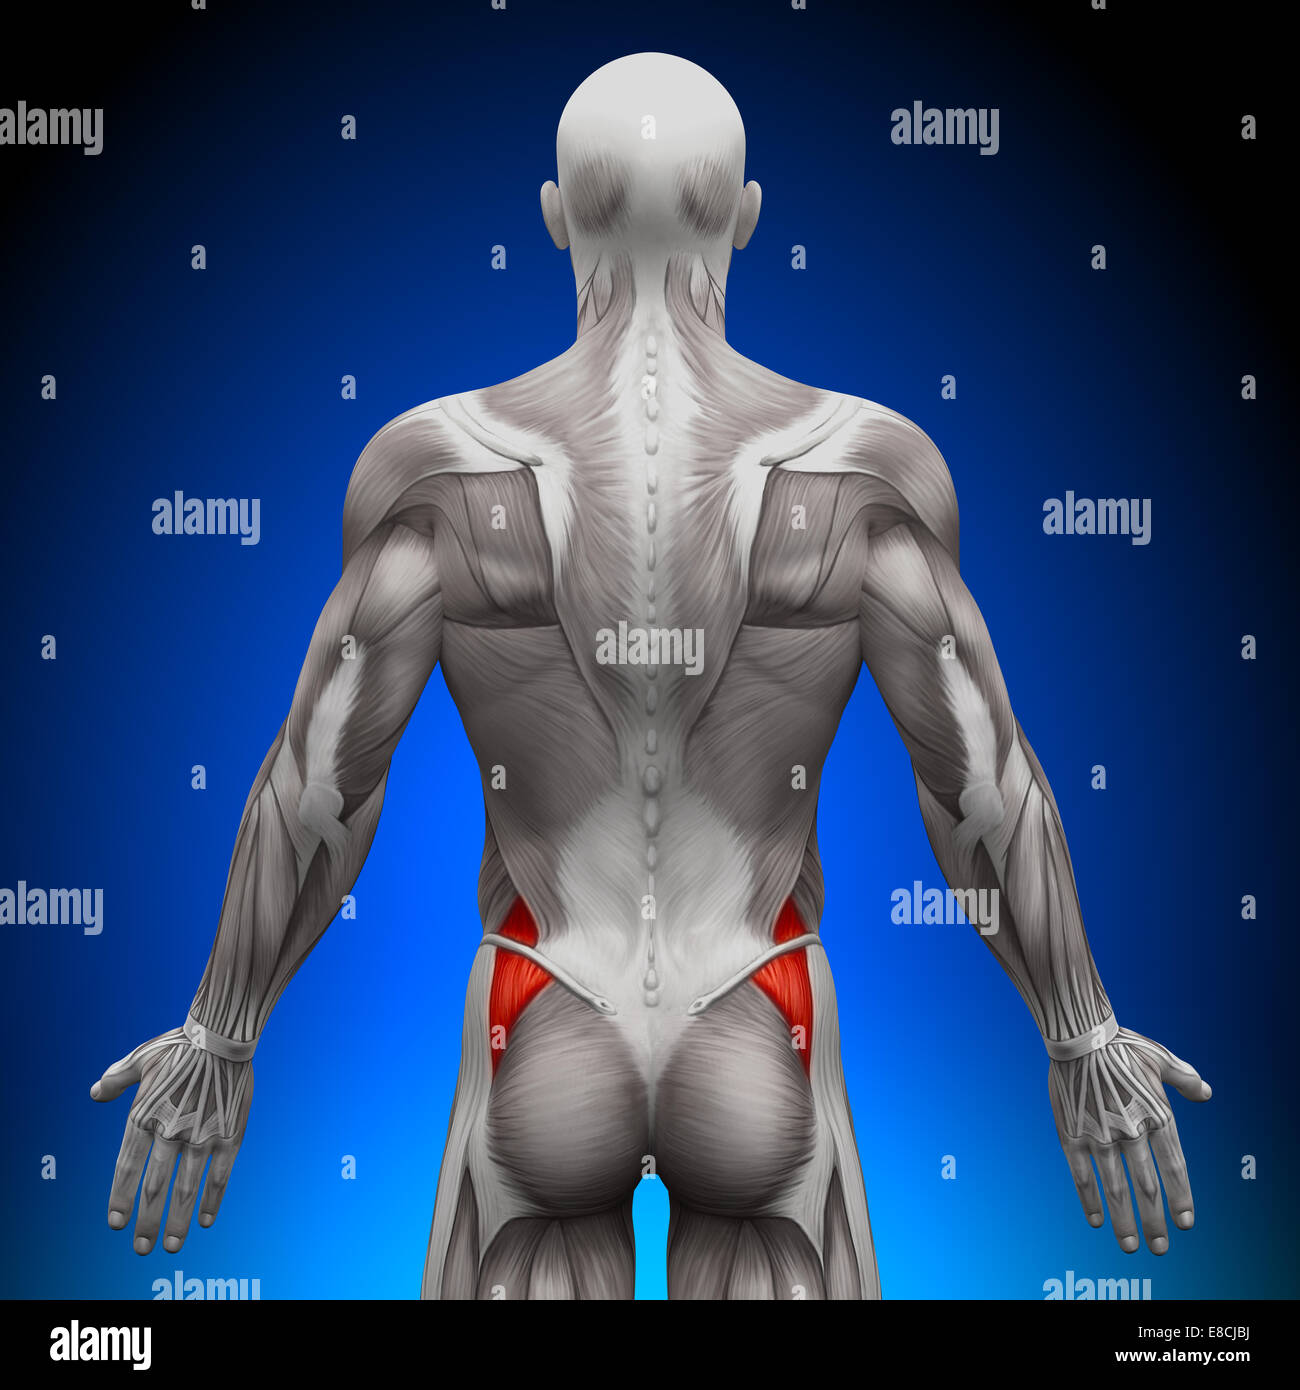 Anatomy Male Muscular Back View Stockfotos & Anatomy Male Muscular ...